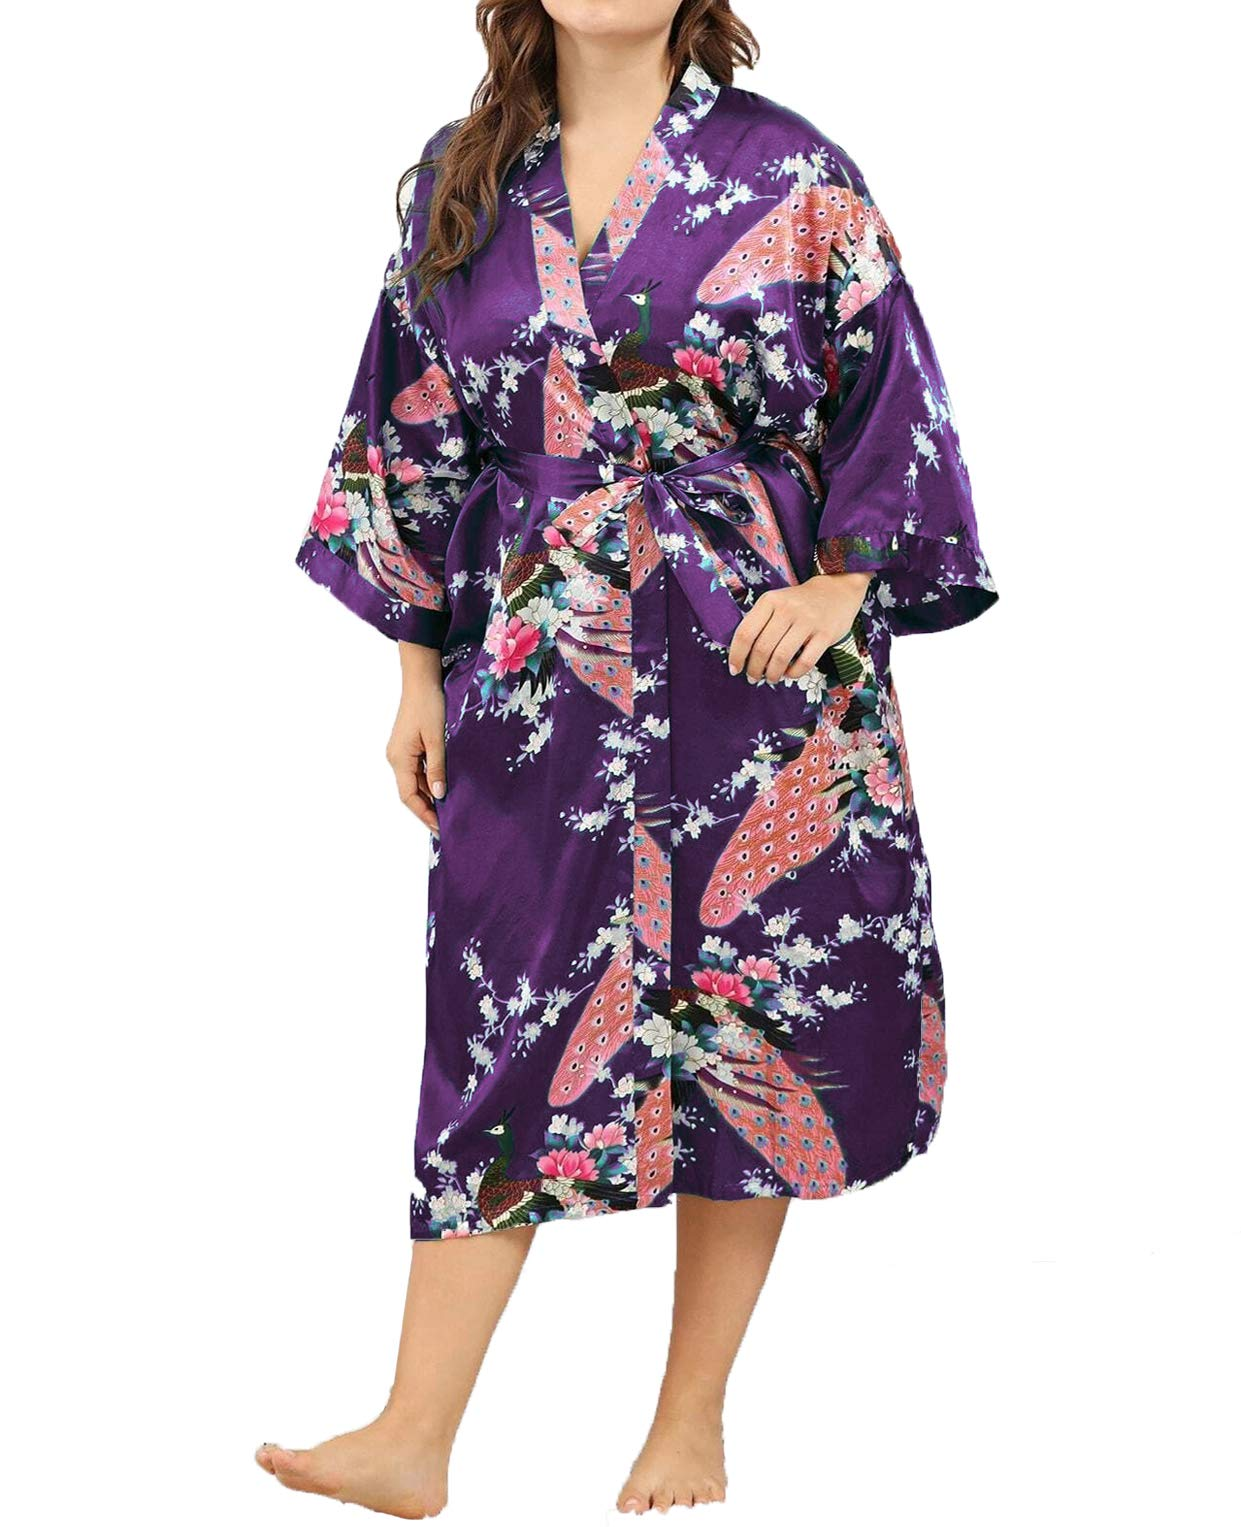 Womens Plus Size Robes Kimono Floral Peacock Satin Silk Bridesmaid 3/4 Sleeve Bathrobe